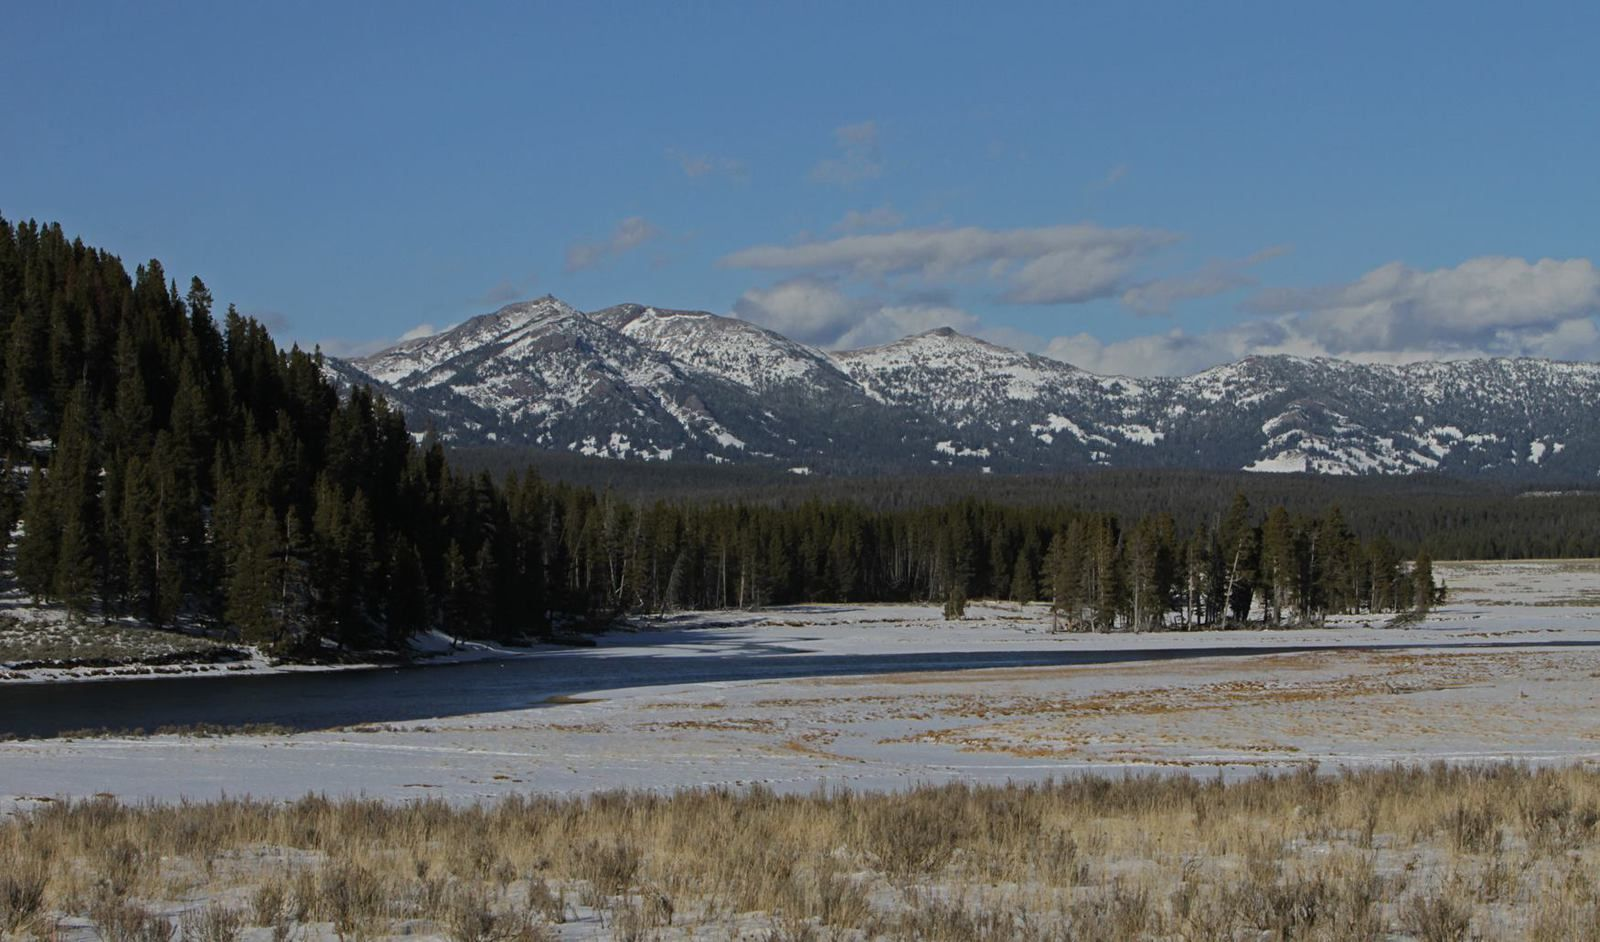 The Washburn Range as seen from Hayden Valley - photo Yellowstone National Park in 2014